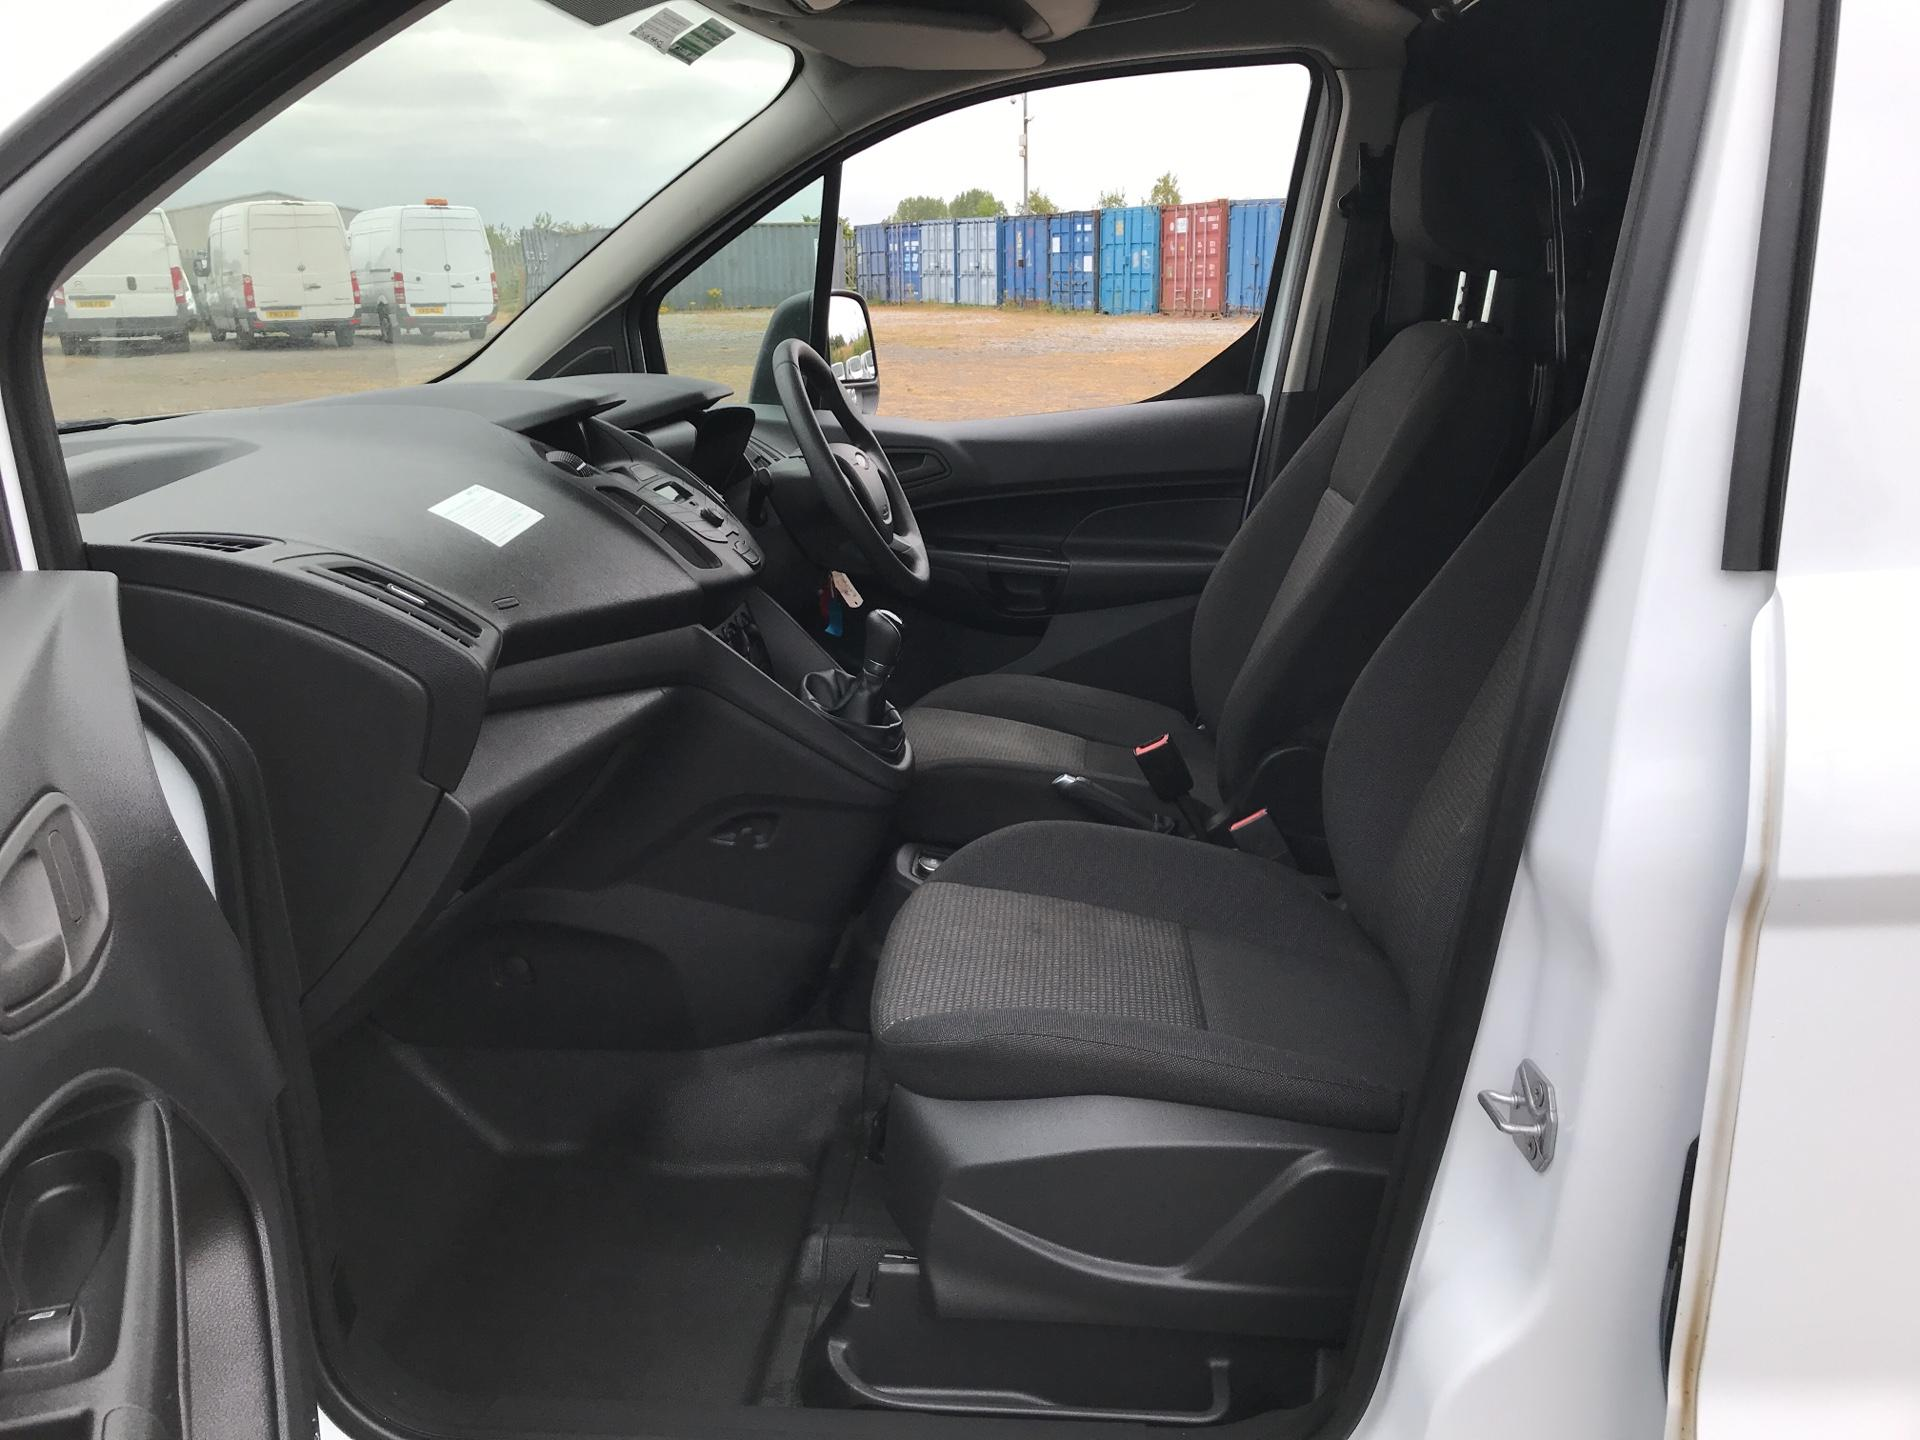 2016 Ford Transit Connect 200 L1 DIESEL 1.6 Tdci 75Ps Van EURO 5 (FN16VCW) Image 14